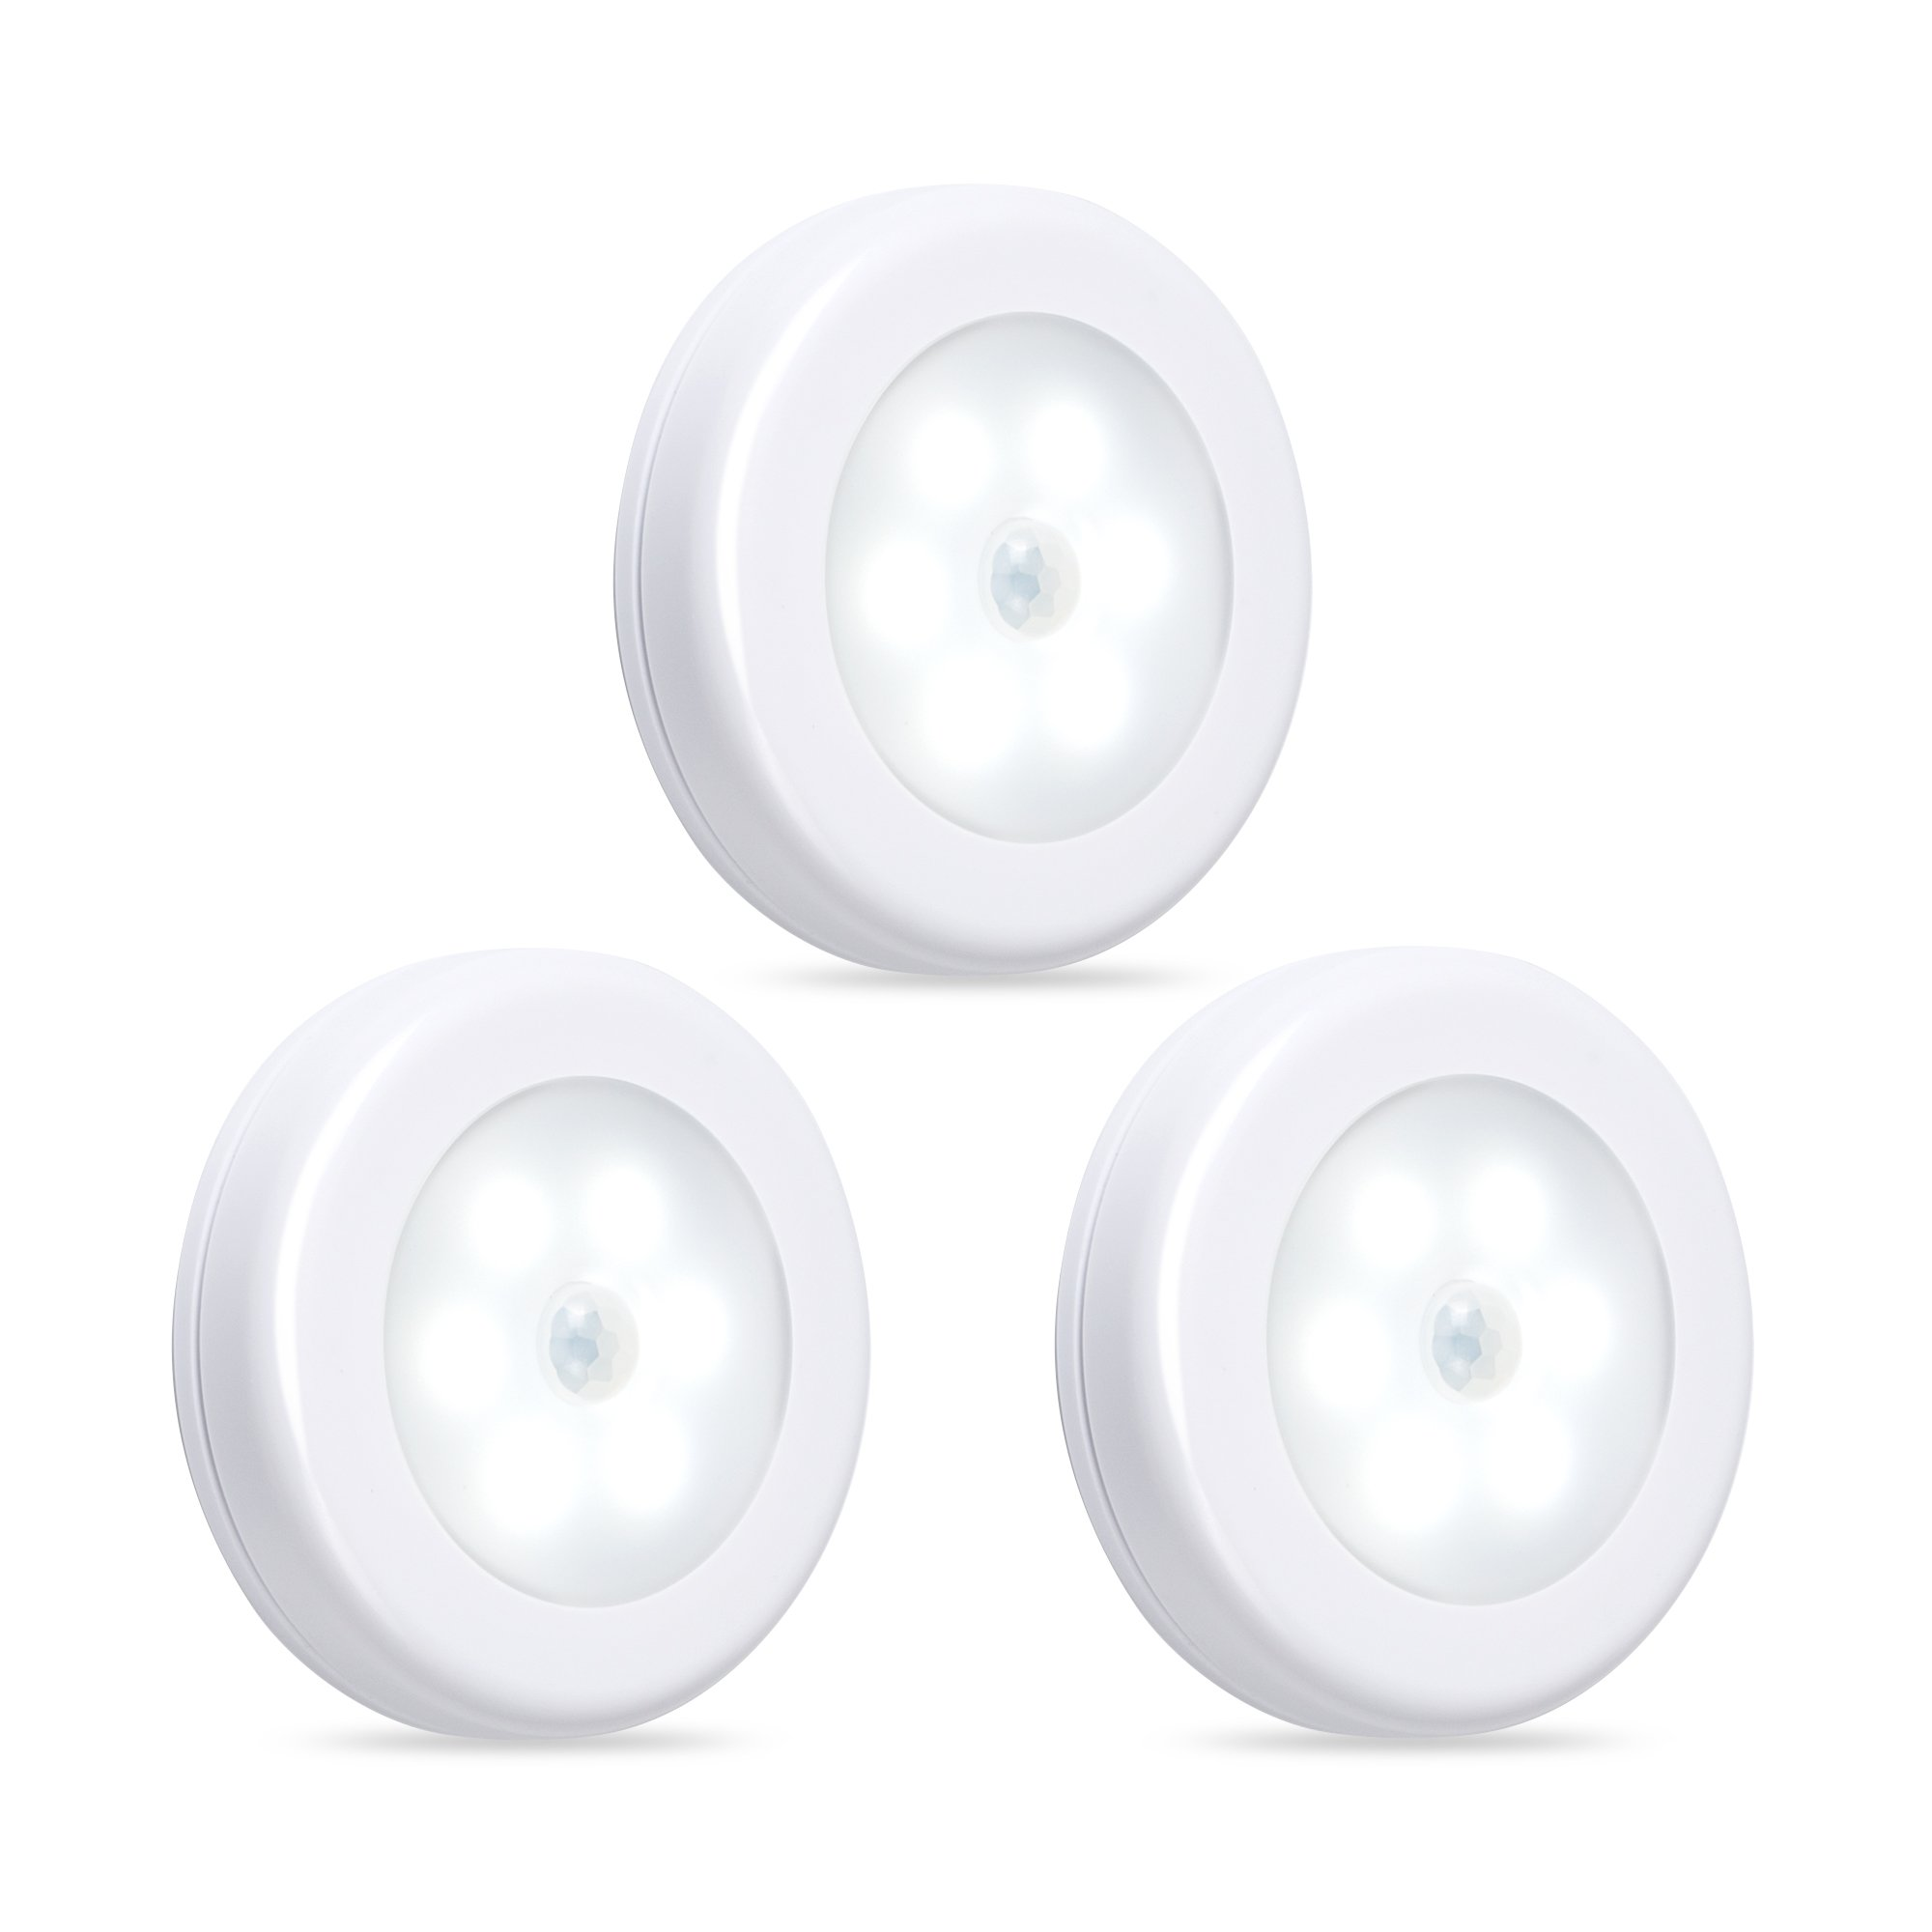 Century CP-BPLL3 Motion Sensor Battery Powered LED Light for Entrance, Hallway, Garage and Bathroom (3 Pack), Off-White, 3 Unit